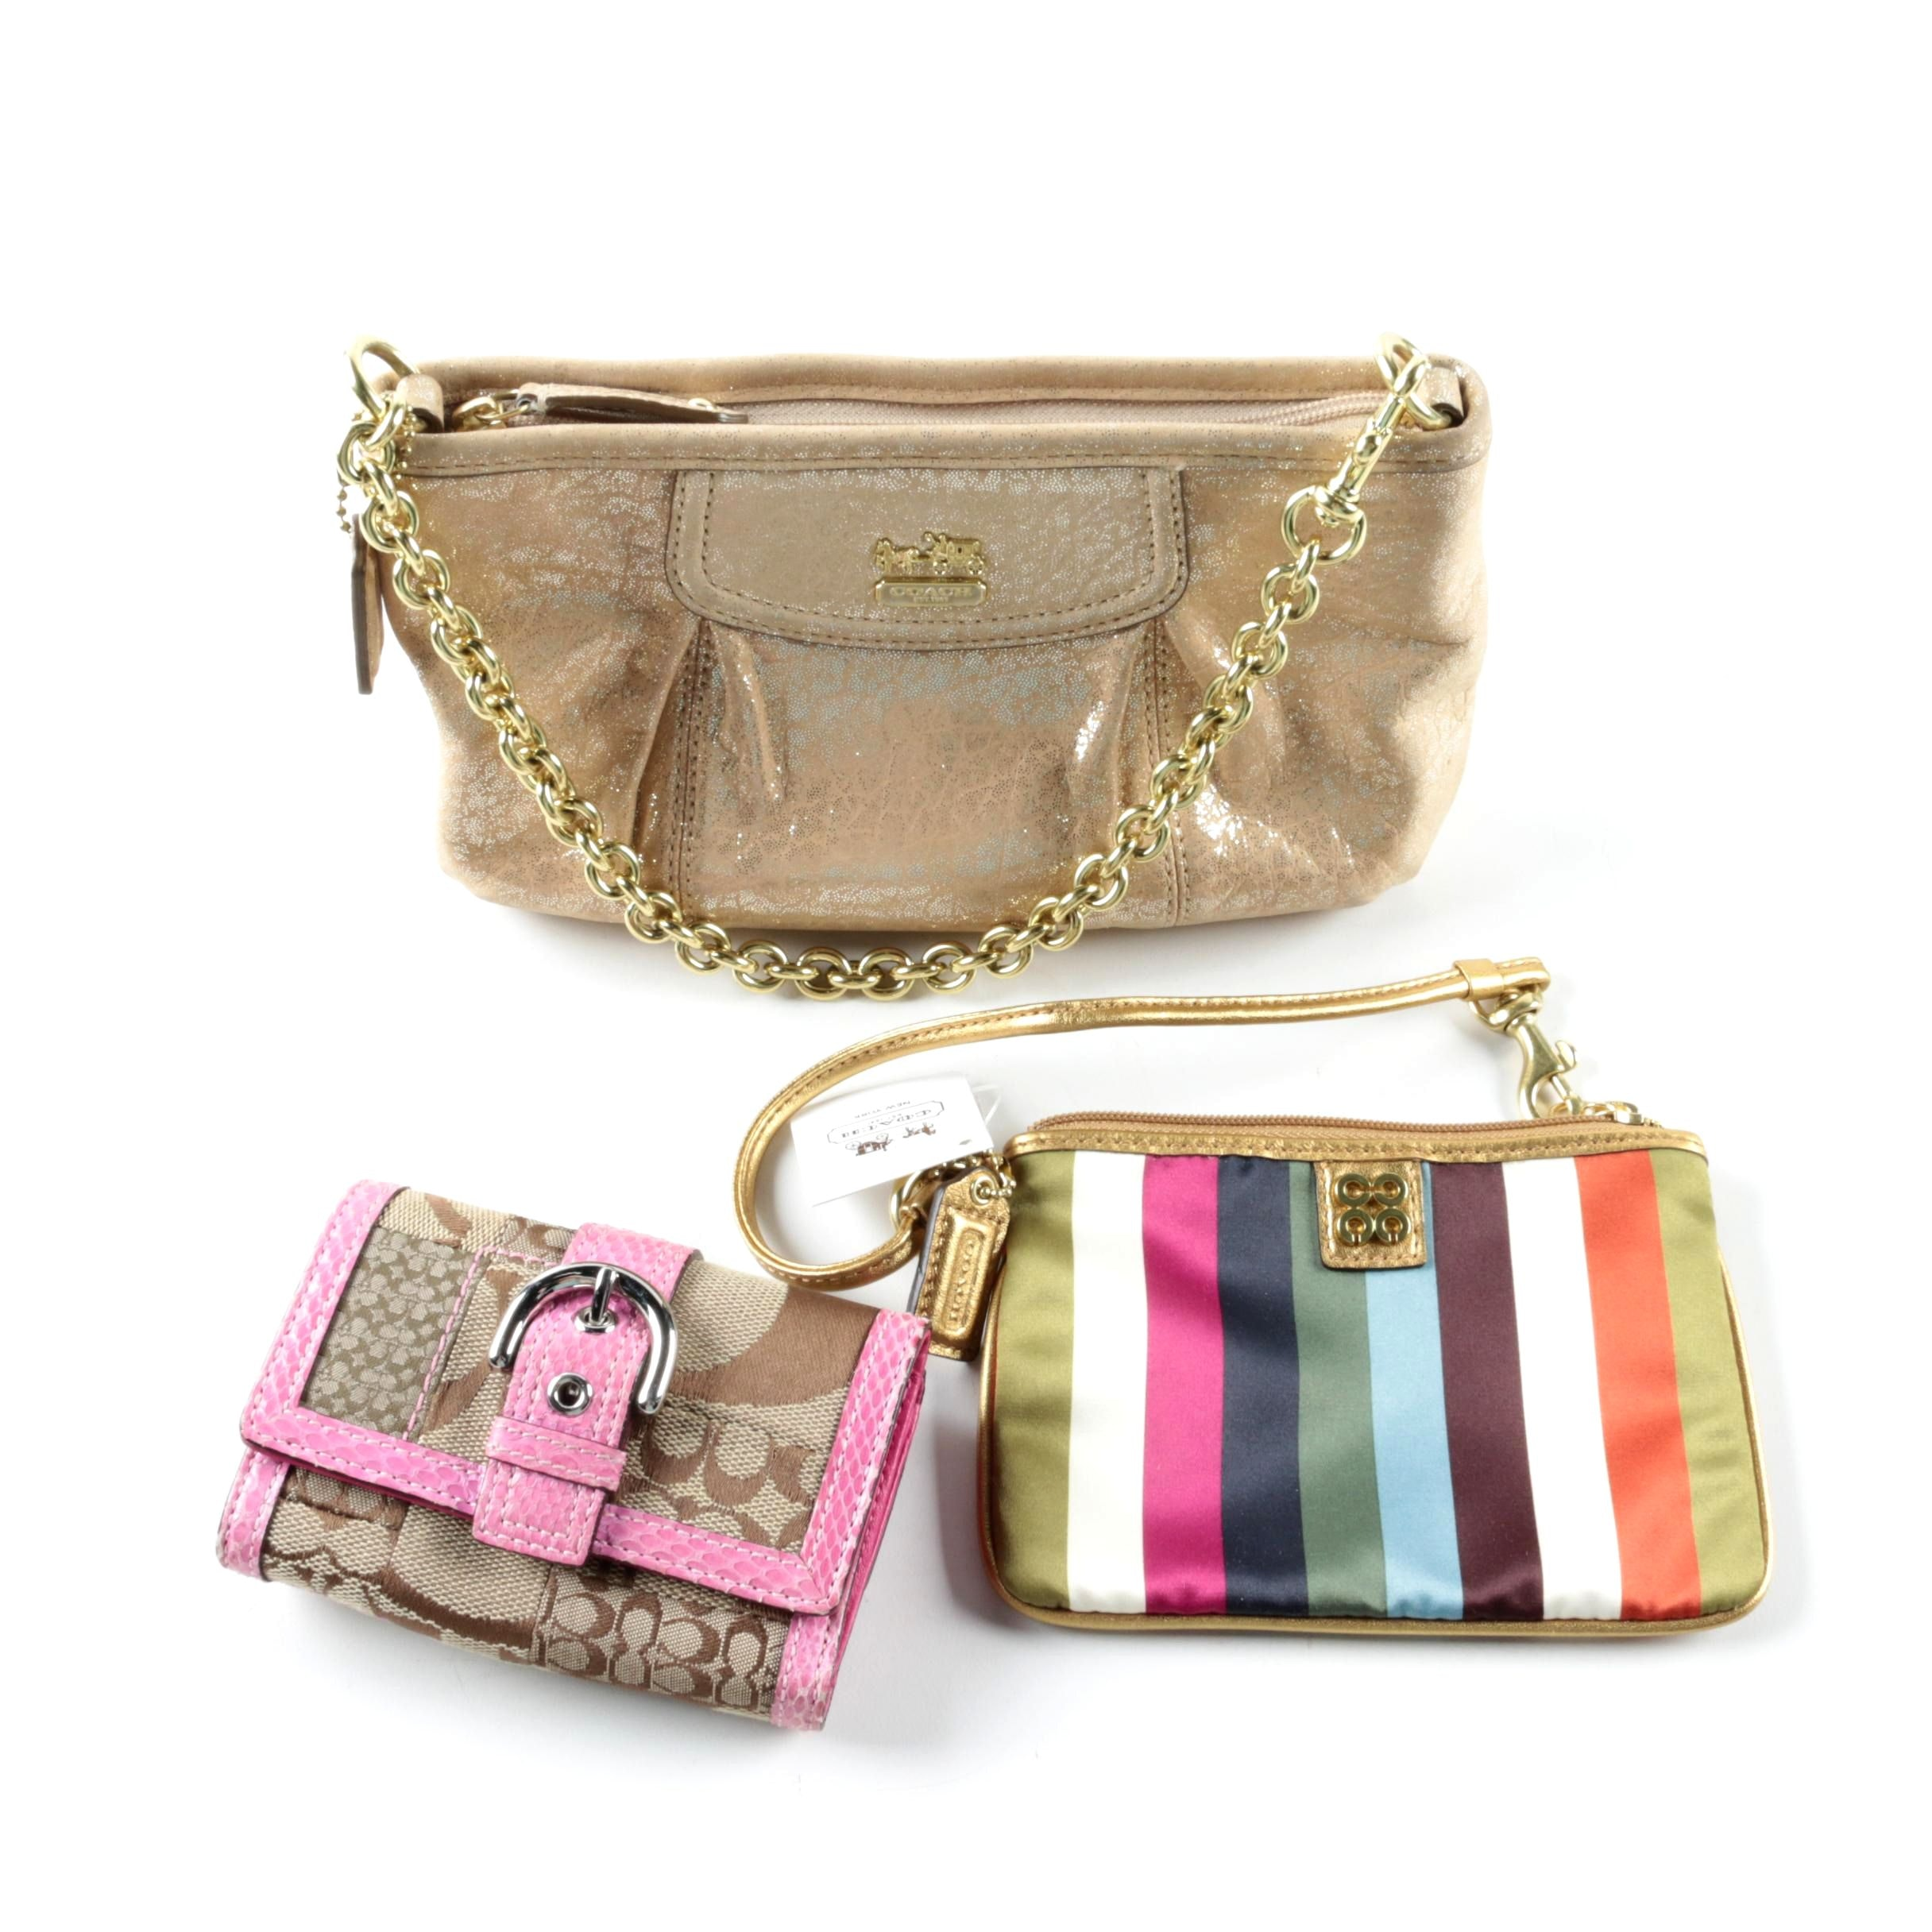 Coach Purse with Coach Wallets